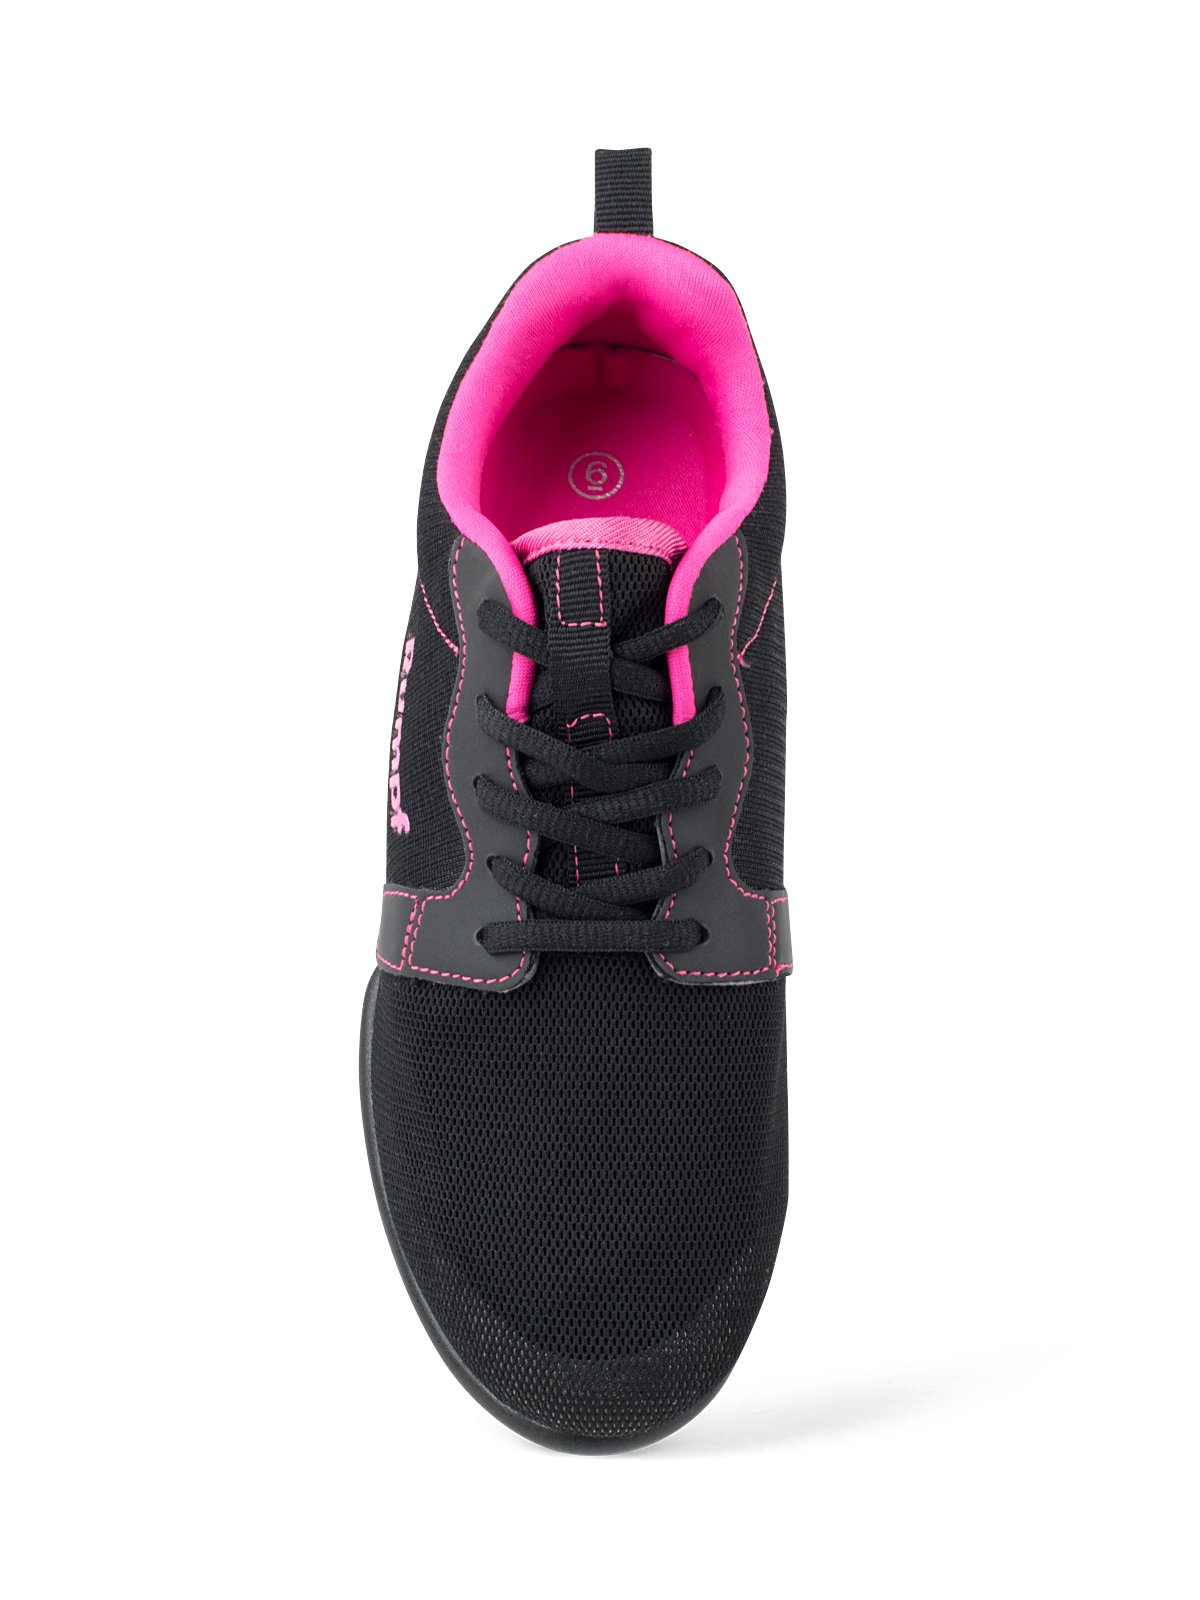 Rumpf Mojo 1510 Black/Pink US 10.5 Women/US 9.5 Men by Rumpf